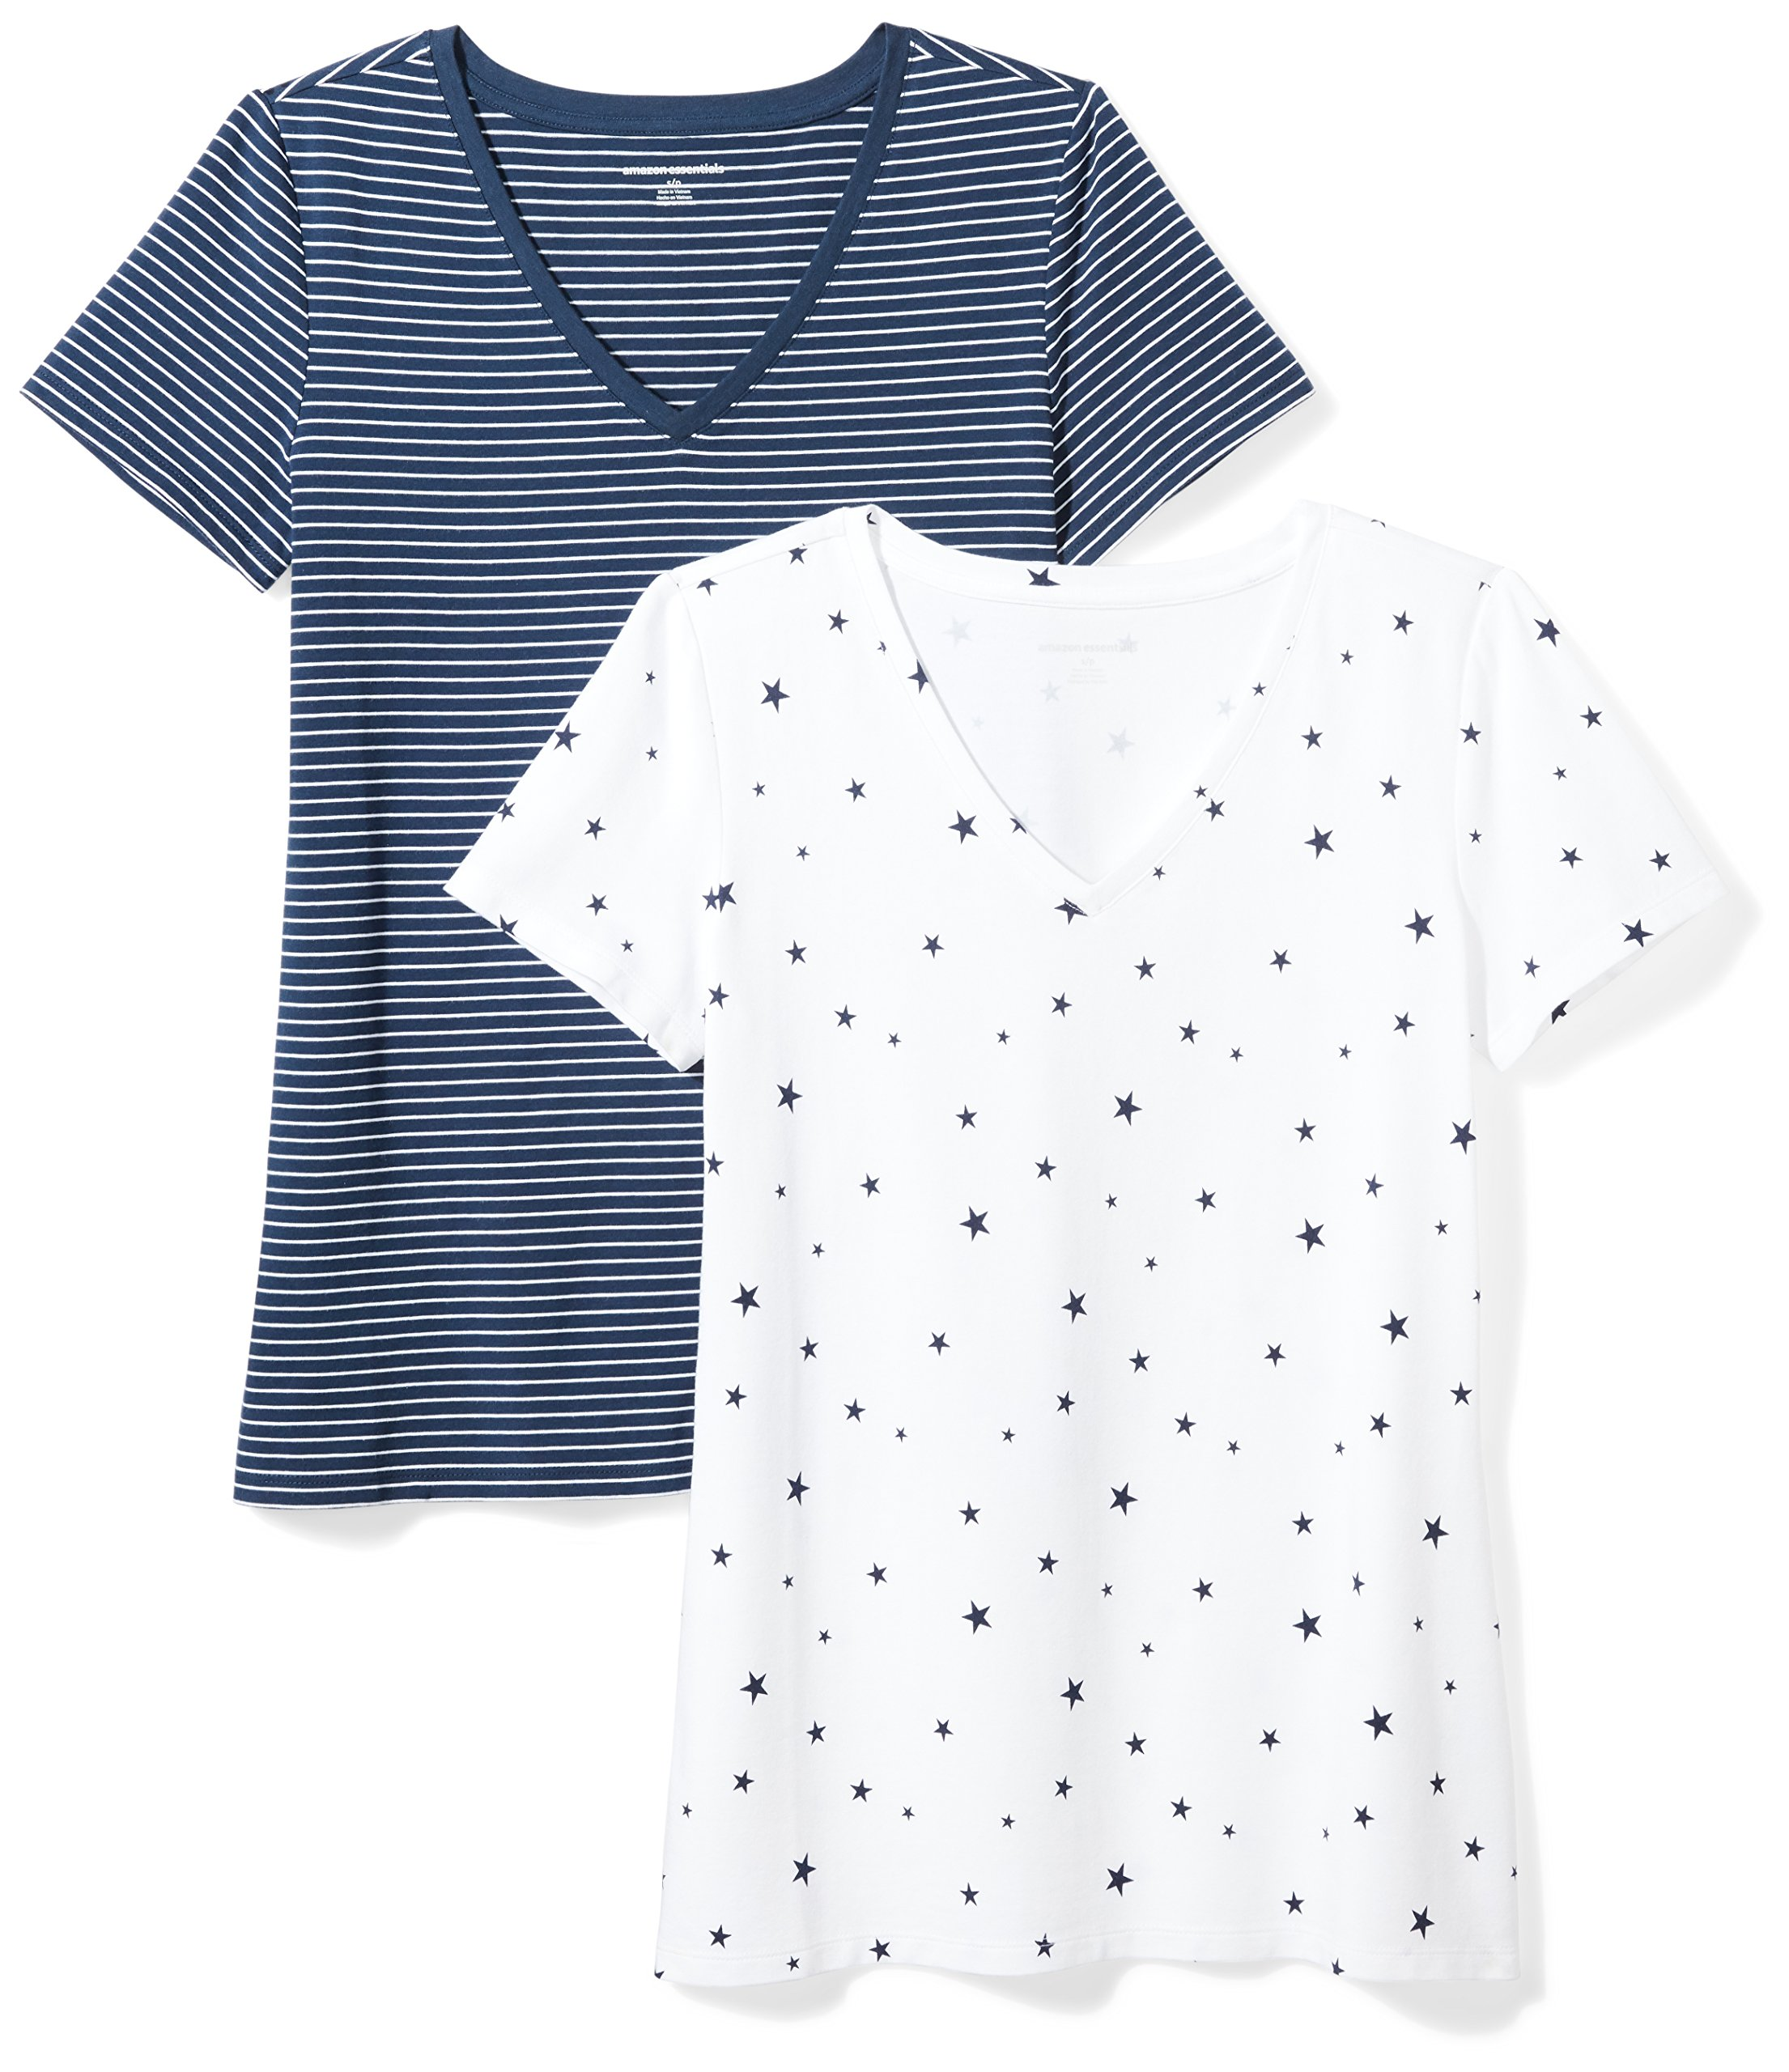 Amazon Essentials Women's 2-Pack Short-Sleeve V-Neck Patterned T-Shirt, Navy Stripe/Star Print, Large